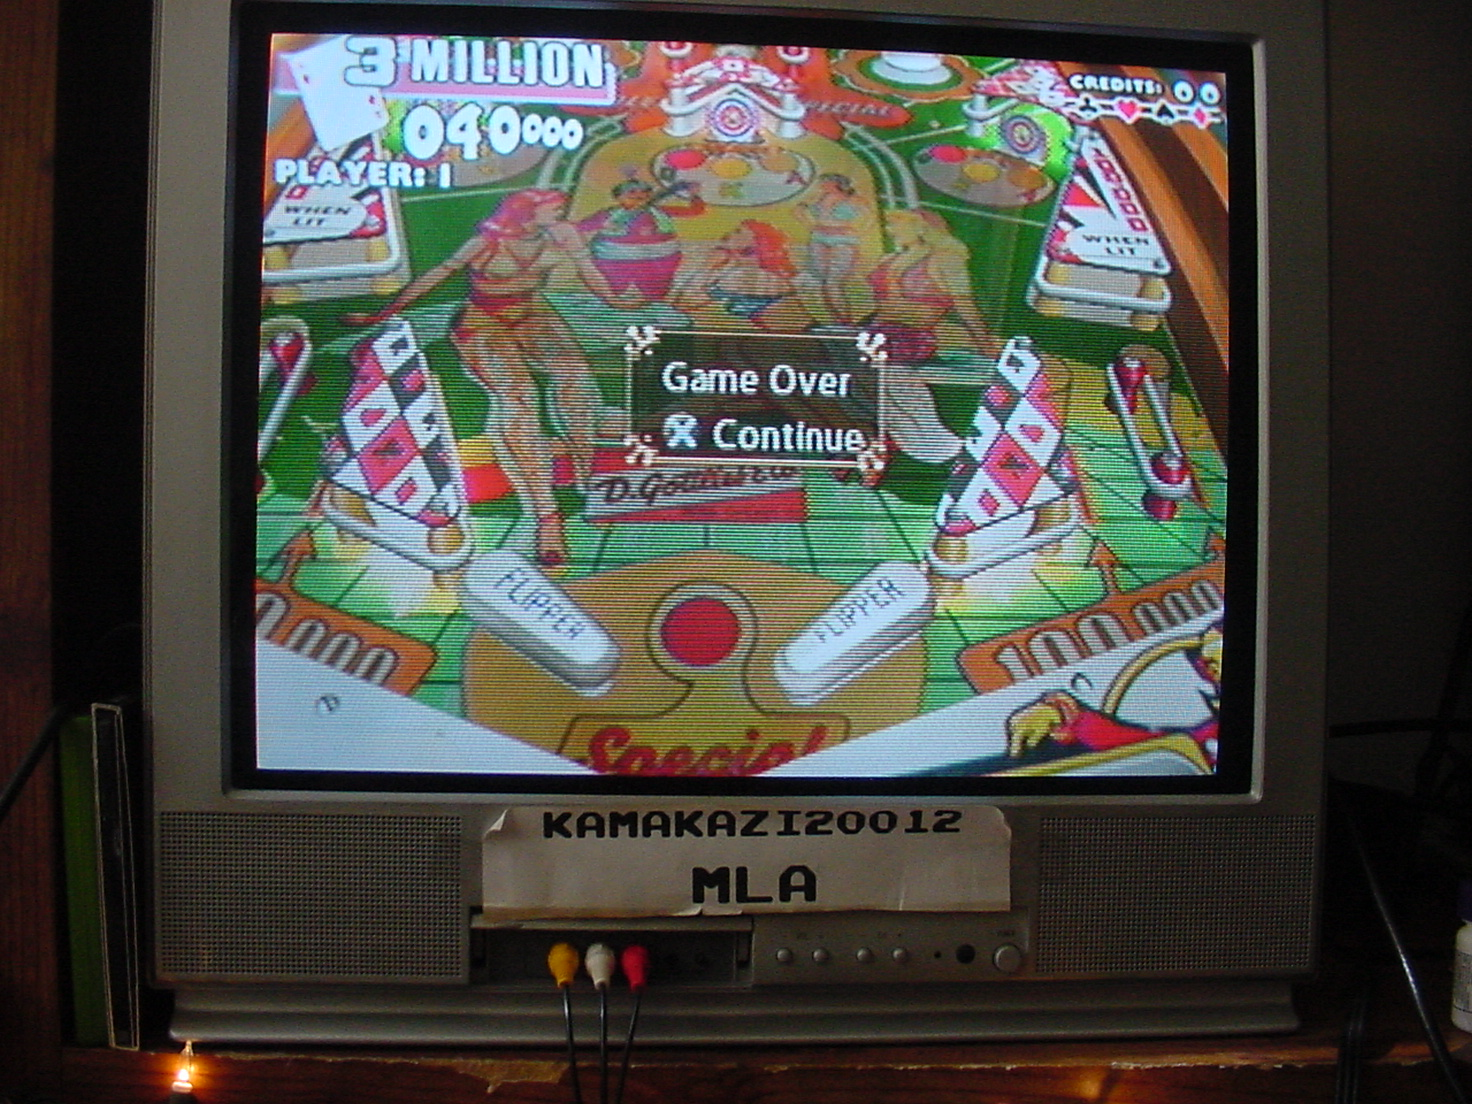 kamakazi20012: Pinball Hall of Fame: The Gottlieb Collection: Ace High [3 Balls] (Playstation 2) 3,040,000 points on 2015-06-14 17:09:17